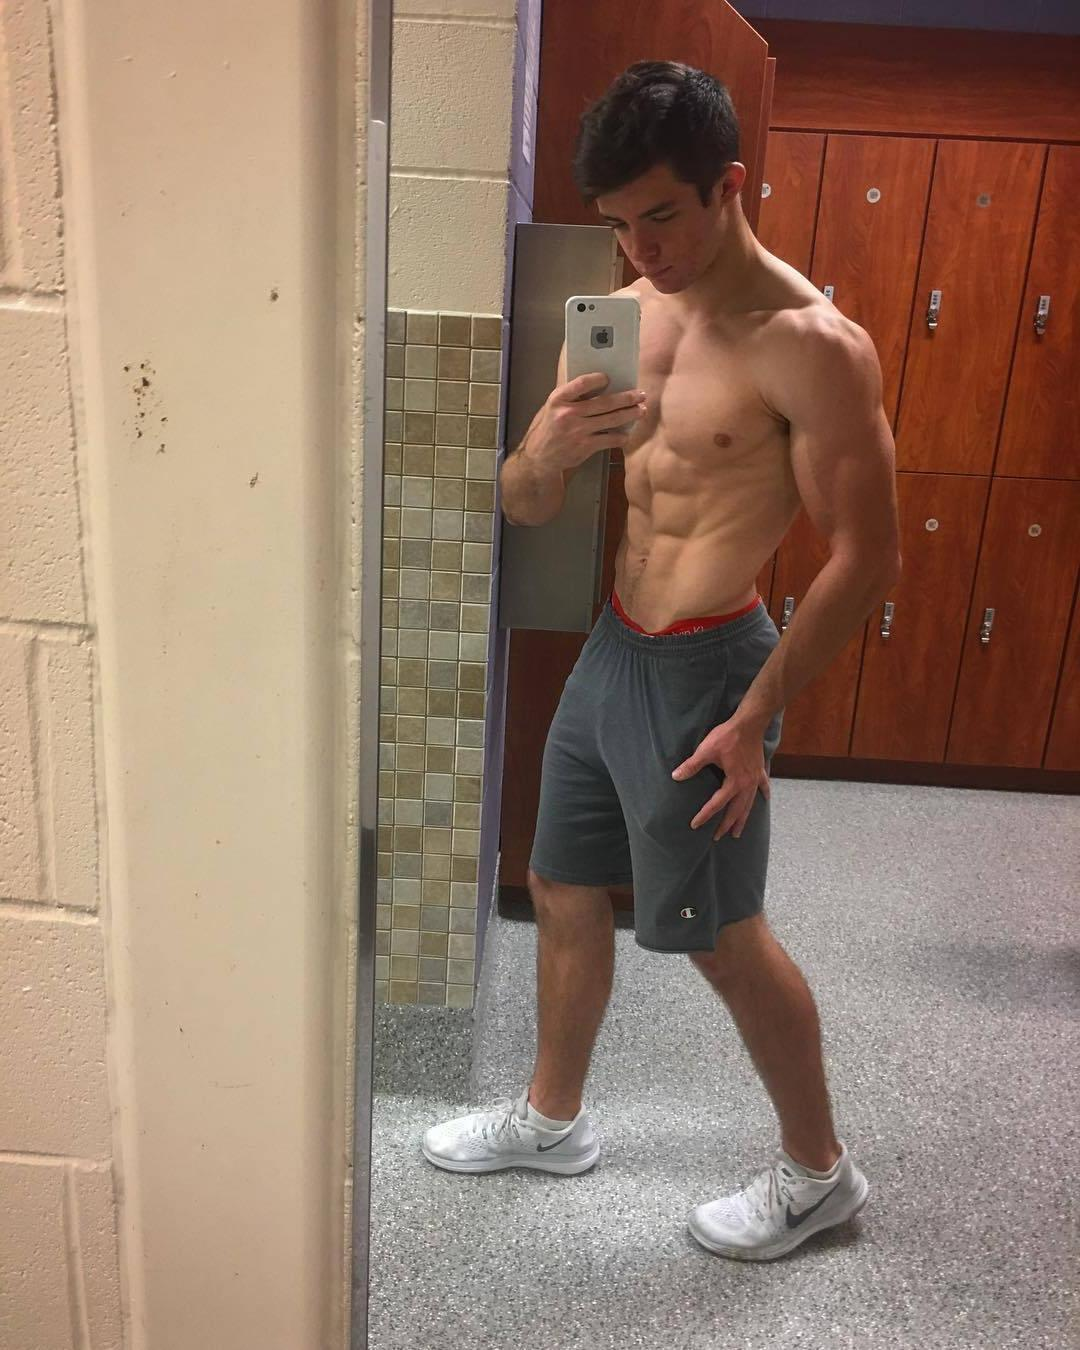 fit-young-gym-bro-shirtless-ripped-sexy-body-sixpack-abs-selfie